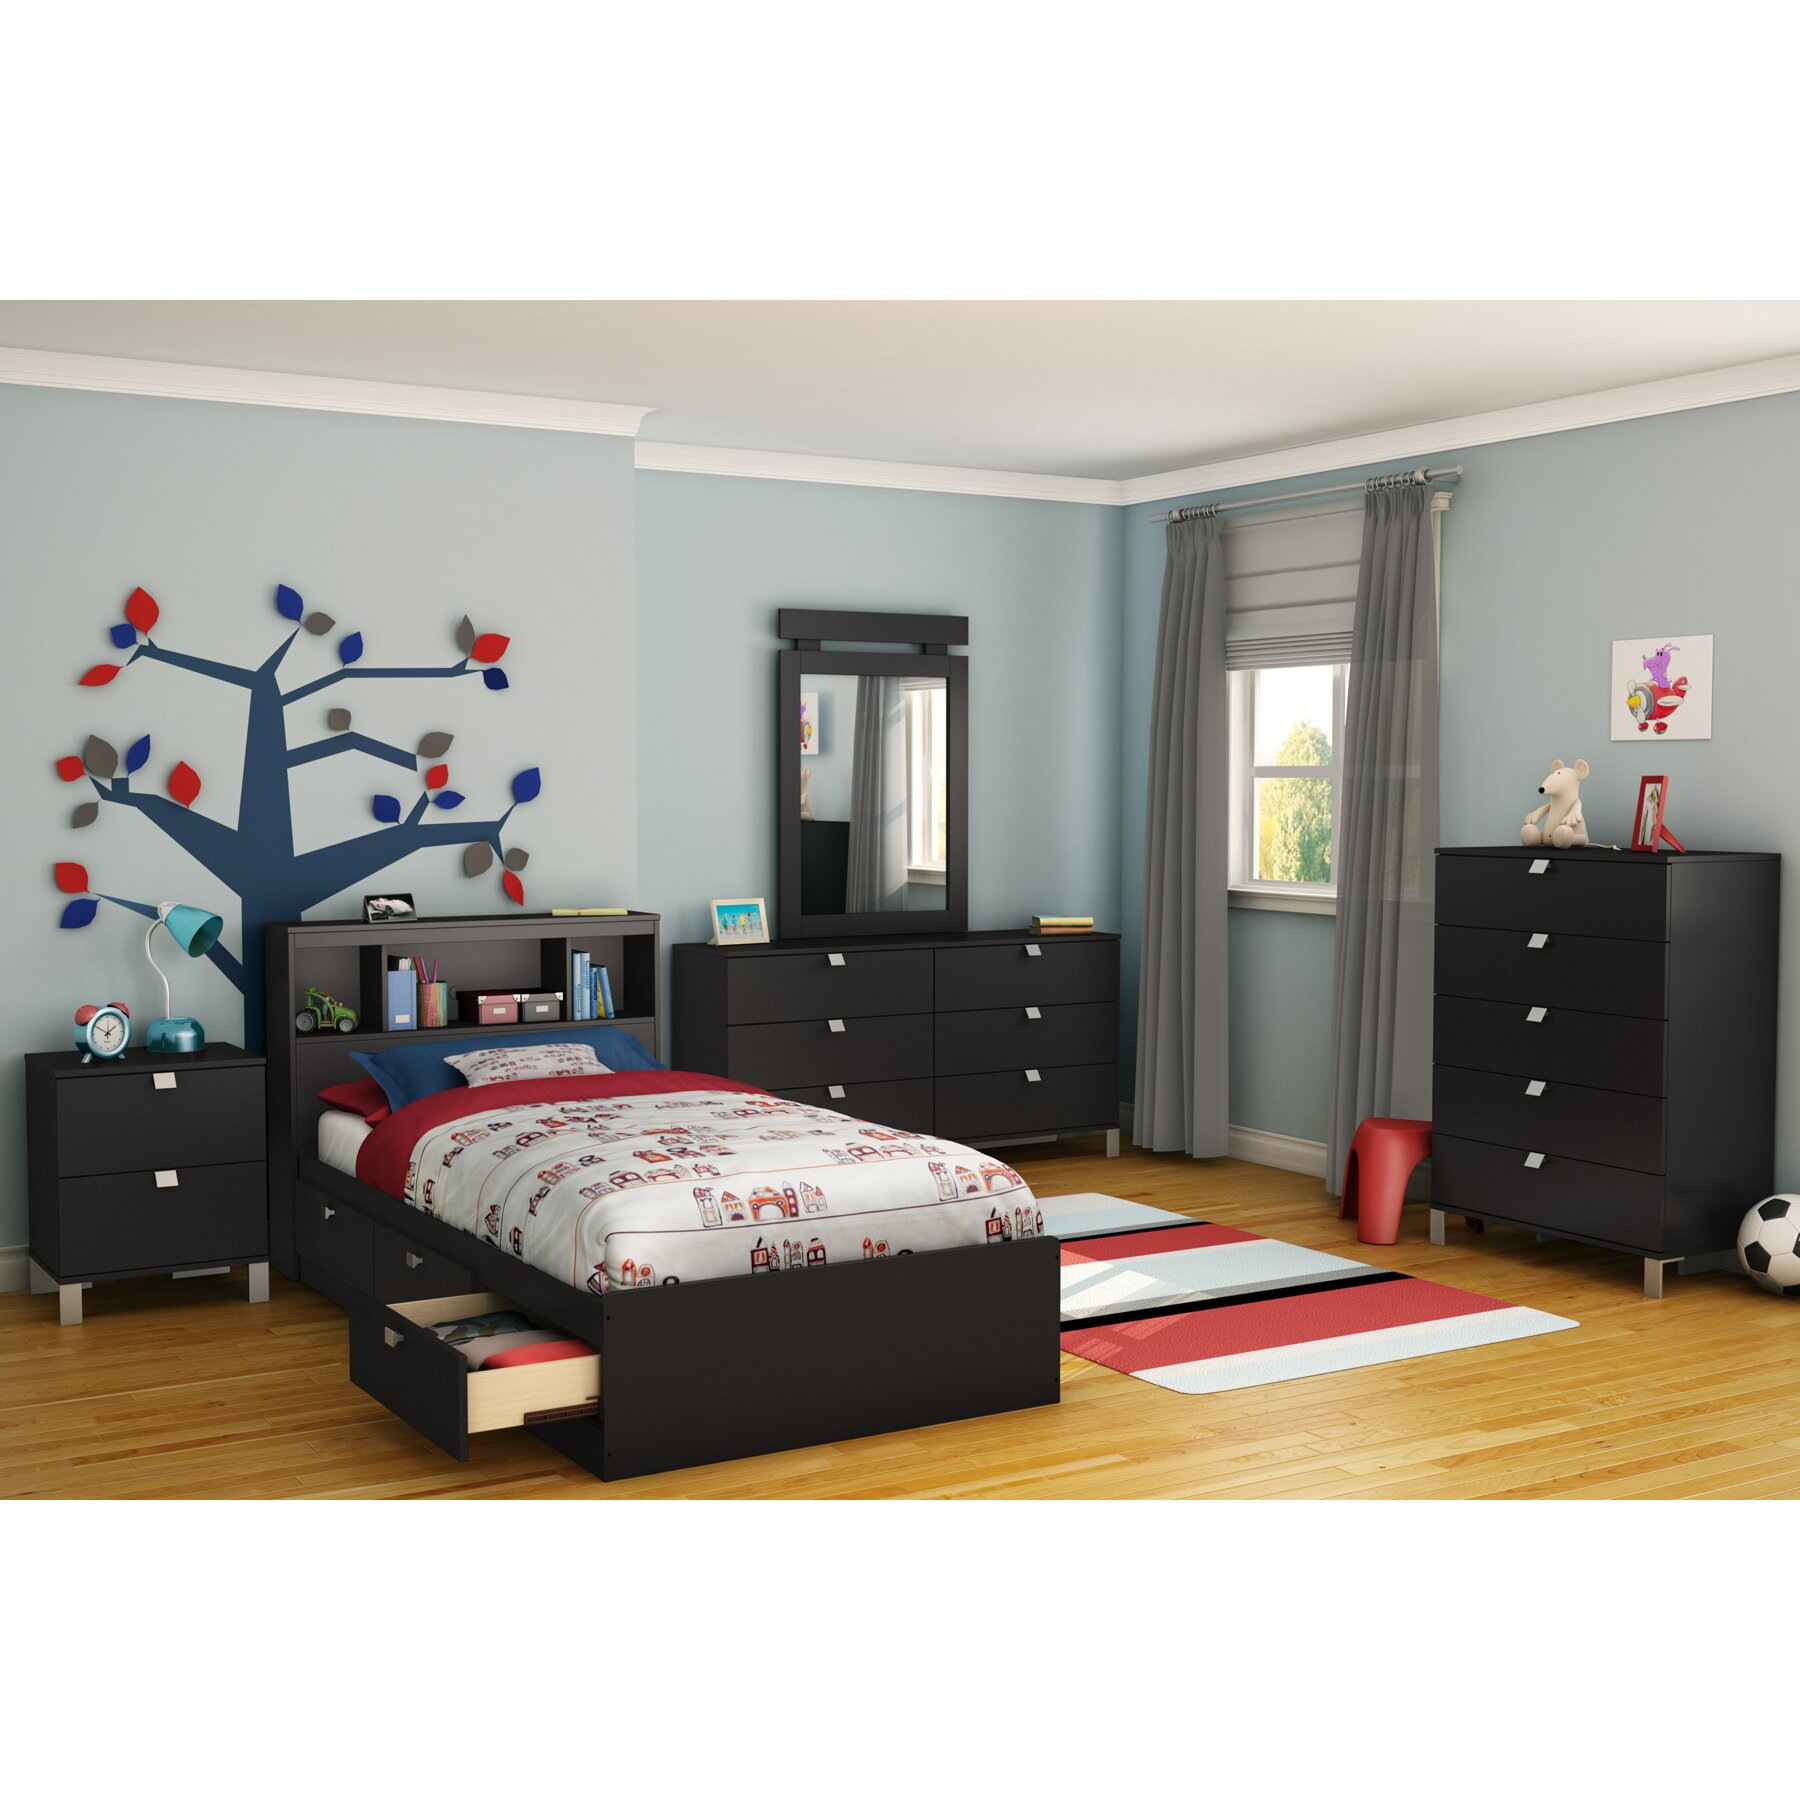 South Shore Spark Platform Customizable Bedroom Set